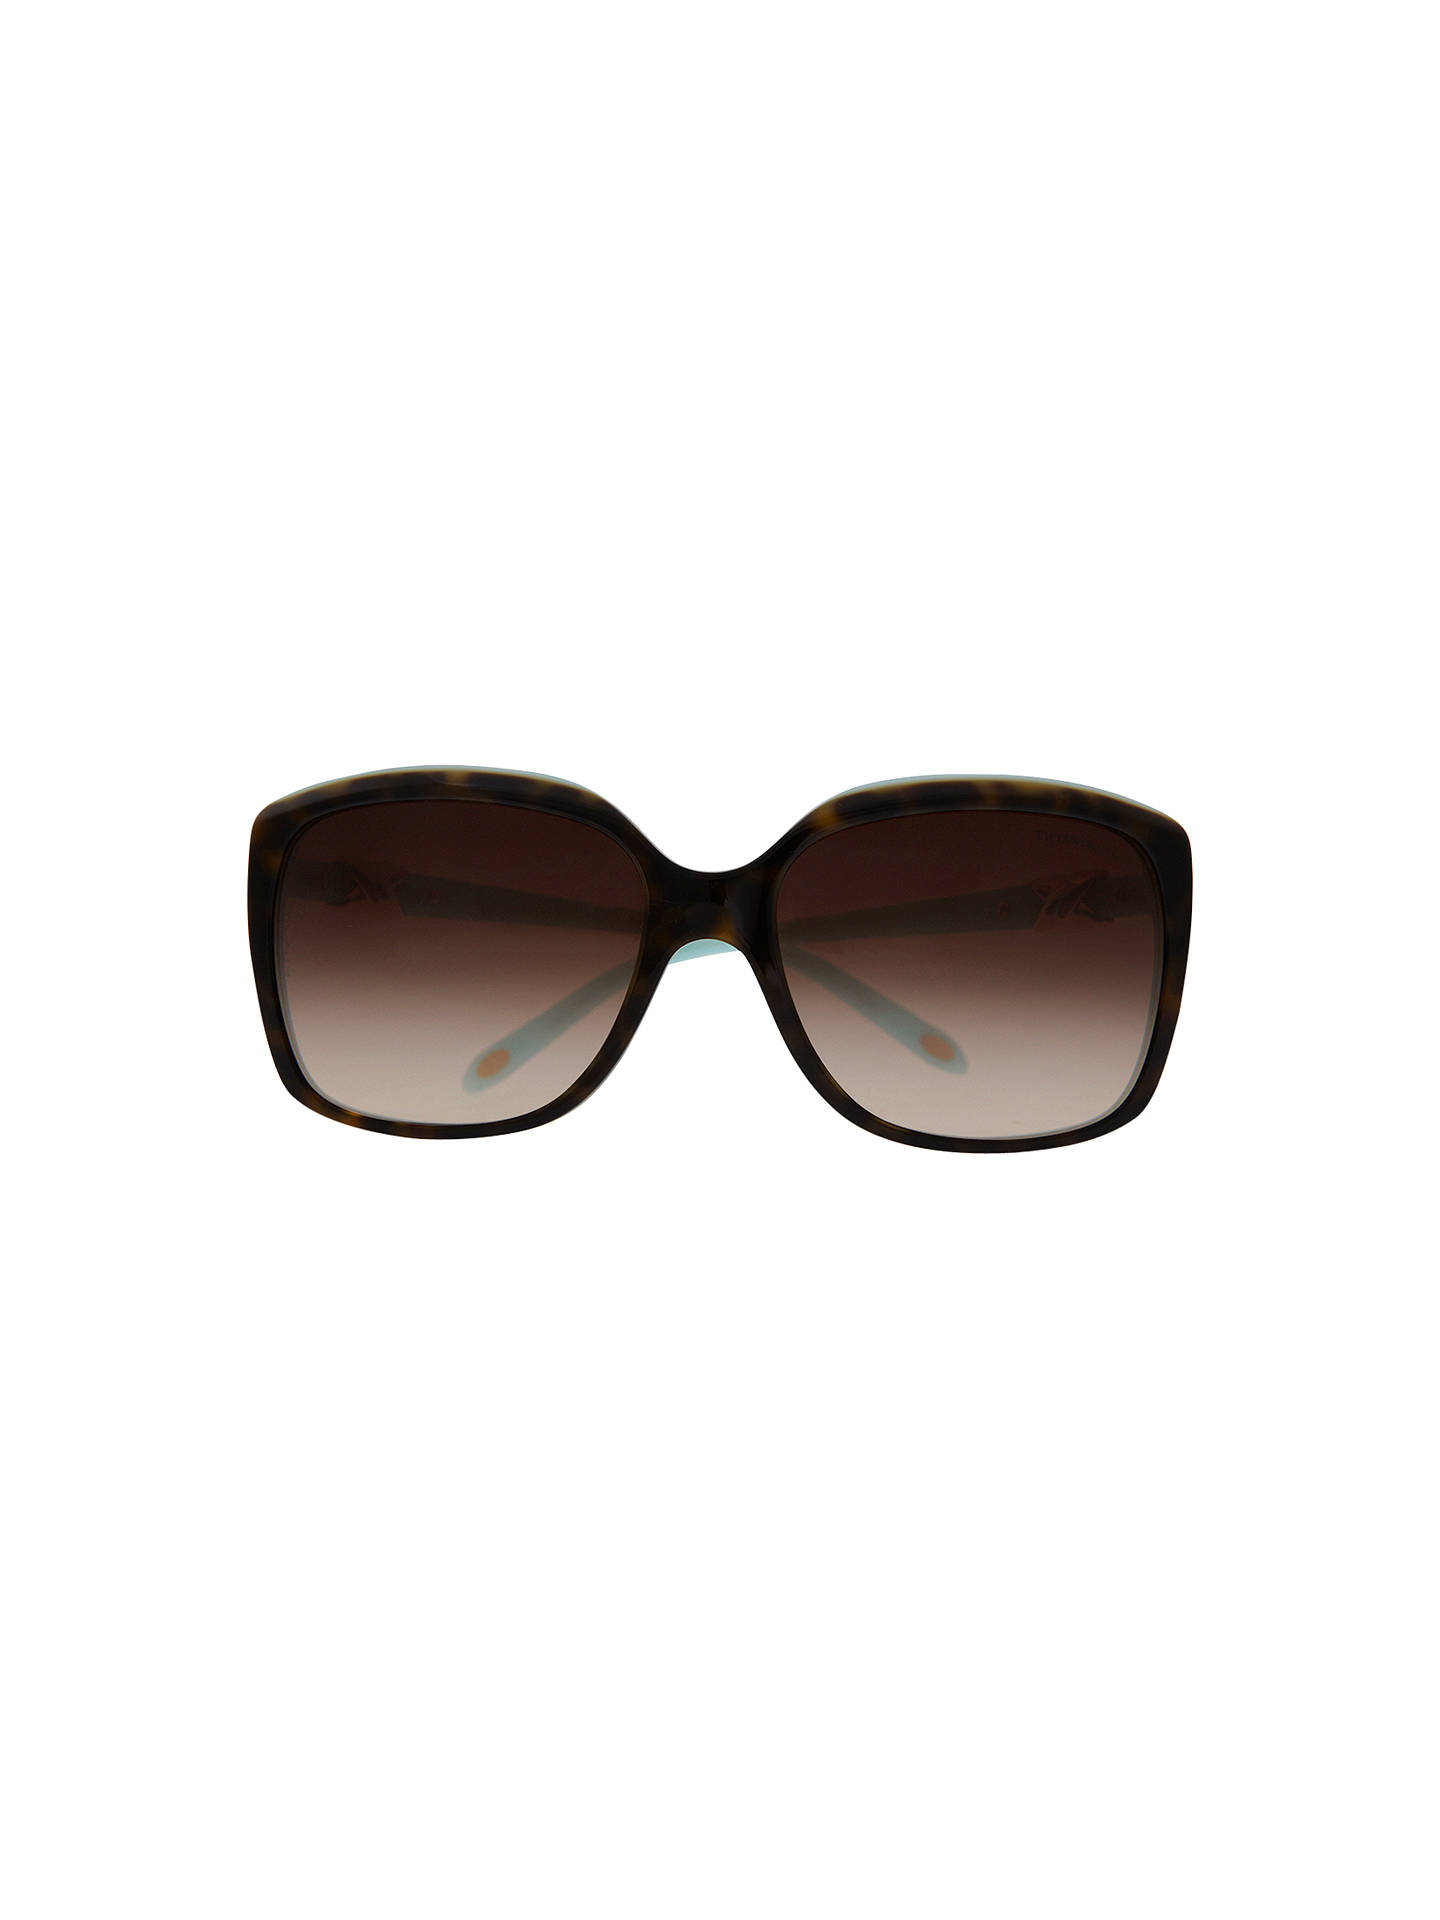 7f7a78bc2d ... BuyTiffany   Co TF4076 Oversized Square Sunglasses